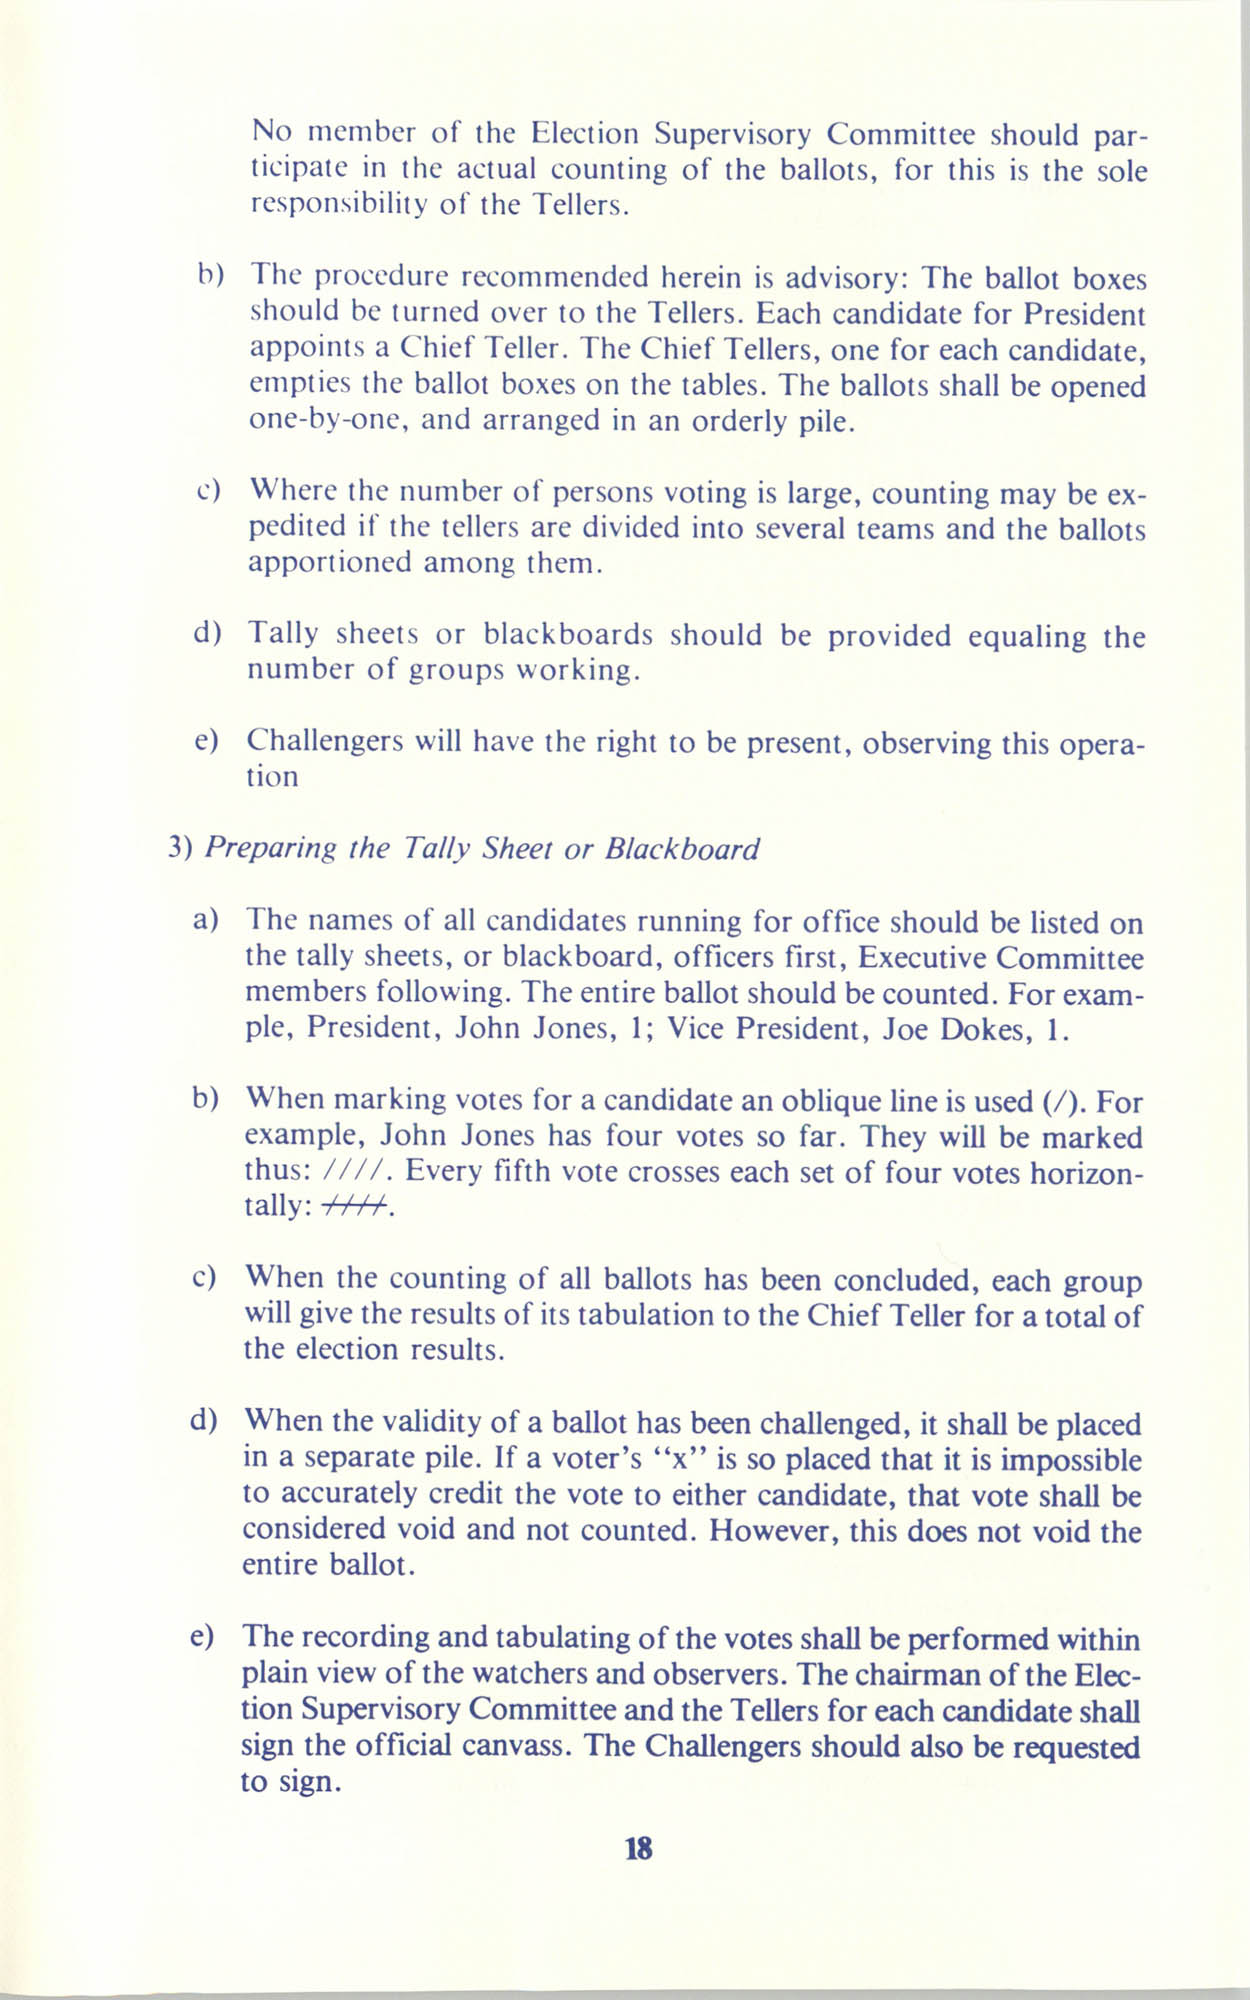 Manual on Branch Election Procedure, Page 18